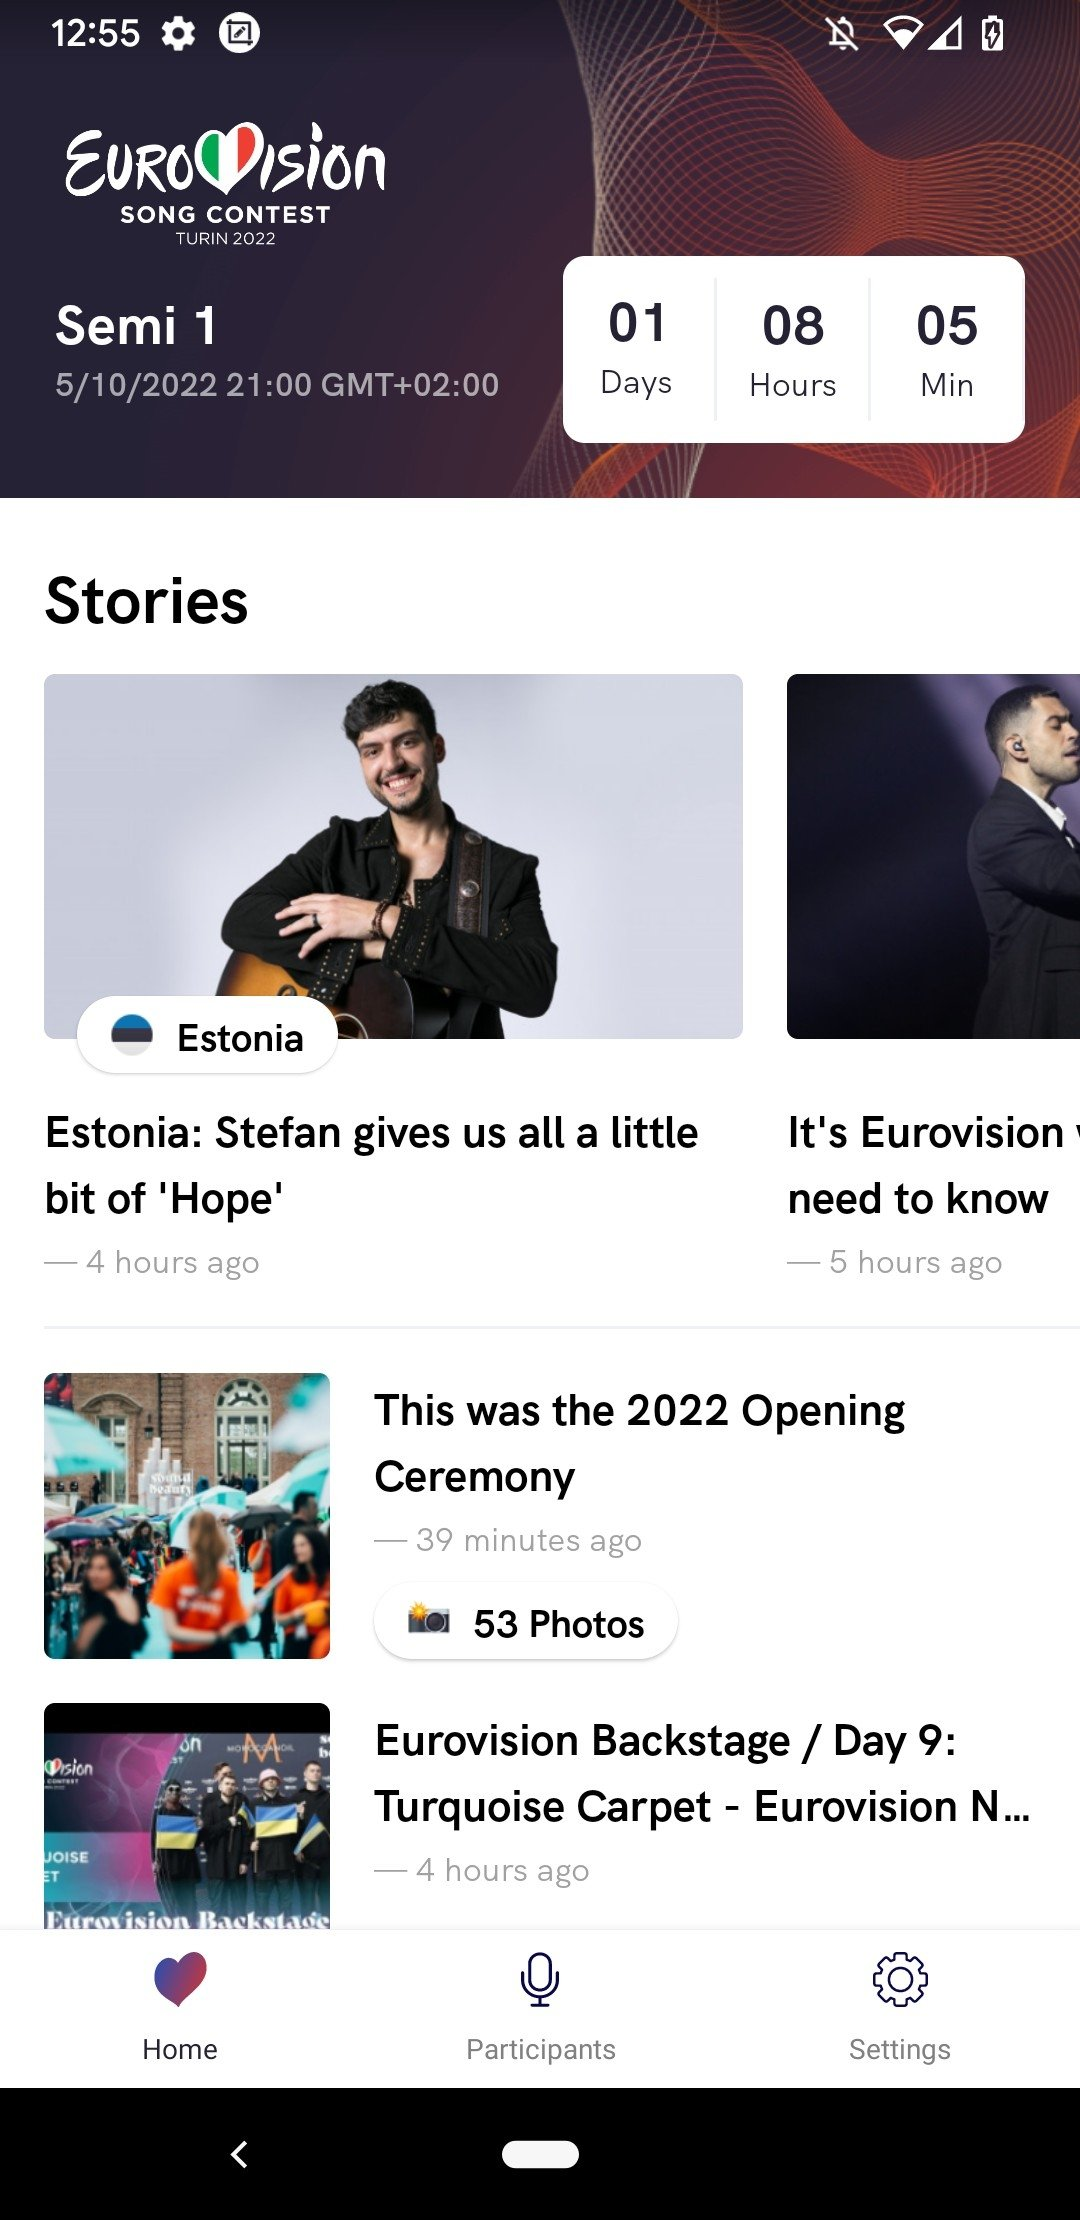 Eurovision Song Contest Android image 5